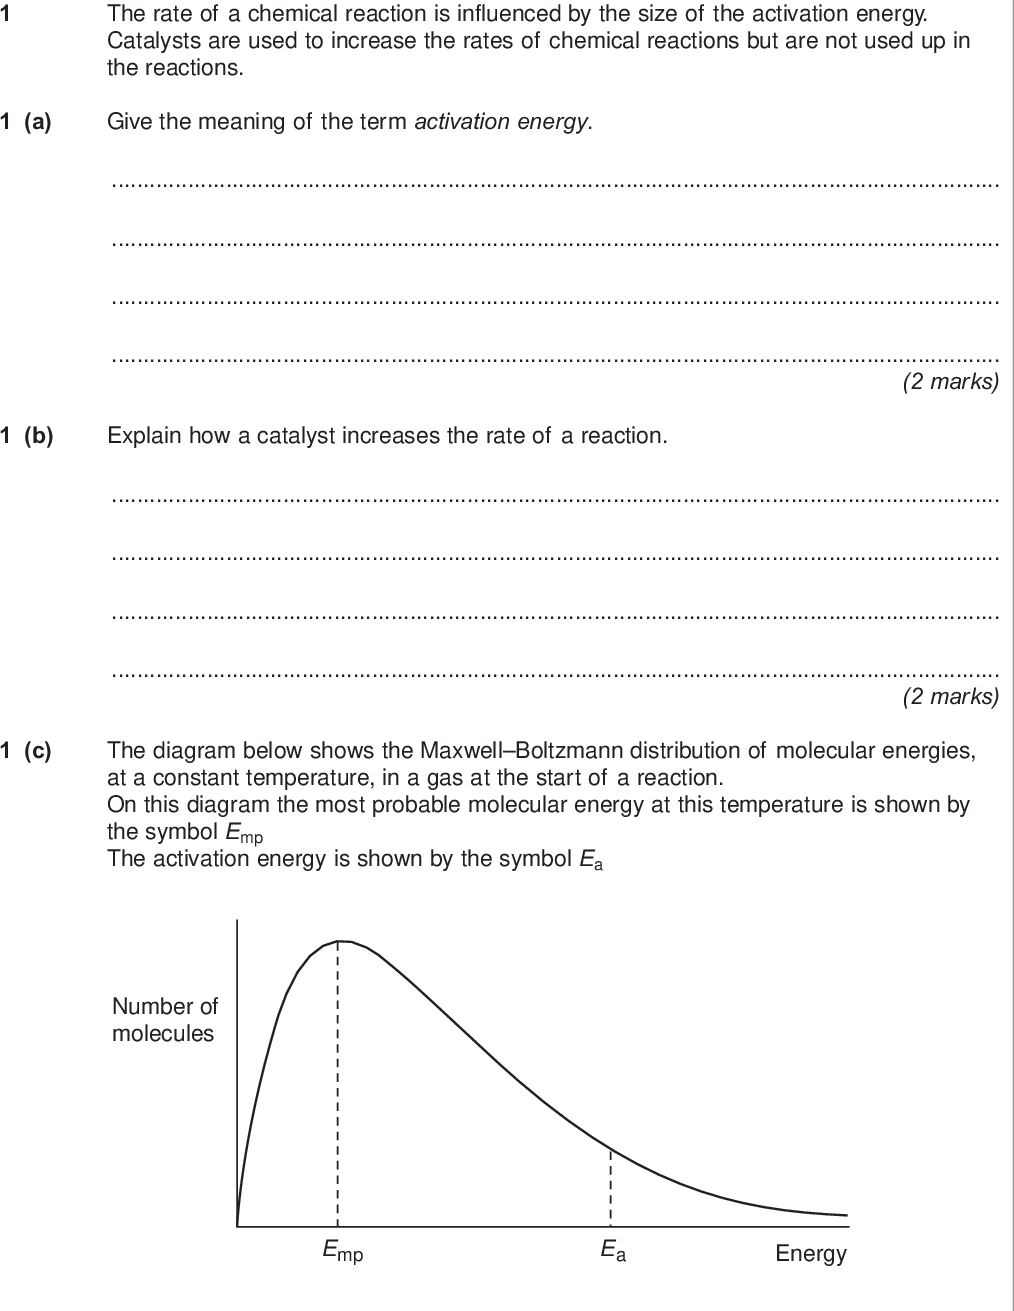 section a answer all questions in the spaces provided do not write outside the box the rate of a chemical reaction is influenced by the size of the activation energy catalysts are used to increase the rates of chemical reactions but are not used up in the reactions a give the meaning of the term activation energy marks b explain how a catalyst increases the rate of a reaction marks c the diagram below shows the maxwell boltzmann distribution of molecular energies at a constant temperature in a gas at the start of a reaction on this diagram the most probable molecular energy at this temperature is shown by the symbol emp the activation energy is shown by the symbol ea number of molecules emp ea energy wmp jun chem do not write outside the box to answer the questions c i to c iv you should use the words increases decreases or stays the same you may use each of these answers once more than once or not at all c i state how if at all the value of the most probable energy emp changes as the total number of molecules is increased at constant temperature mark c ii state how if at all the number of molecules with the most probable energy emp changes as the temperature is decreased without changing the total number of molecules mark c iii state how if at all the number of molecules with energy greater than the activation energy ea changes as the temperature is increased without changing the total number of molecules mark c iv state how if at all the area under the molecular energy distribution curve changes as a catalyst is introduced without changing the temperature or the total number of molecules d mark for each of the following reactions identify a catalyst and name the organic product of the reaction d i the fermentation of an aqueous solution of glucose catalyst name of organic product marks d ii the hydration of but ene catalyst name of organic product marks turn over wmp jun chem